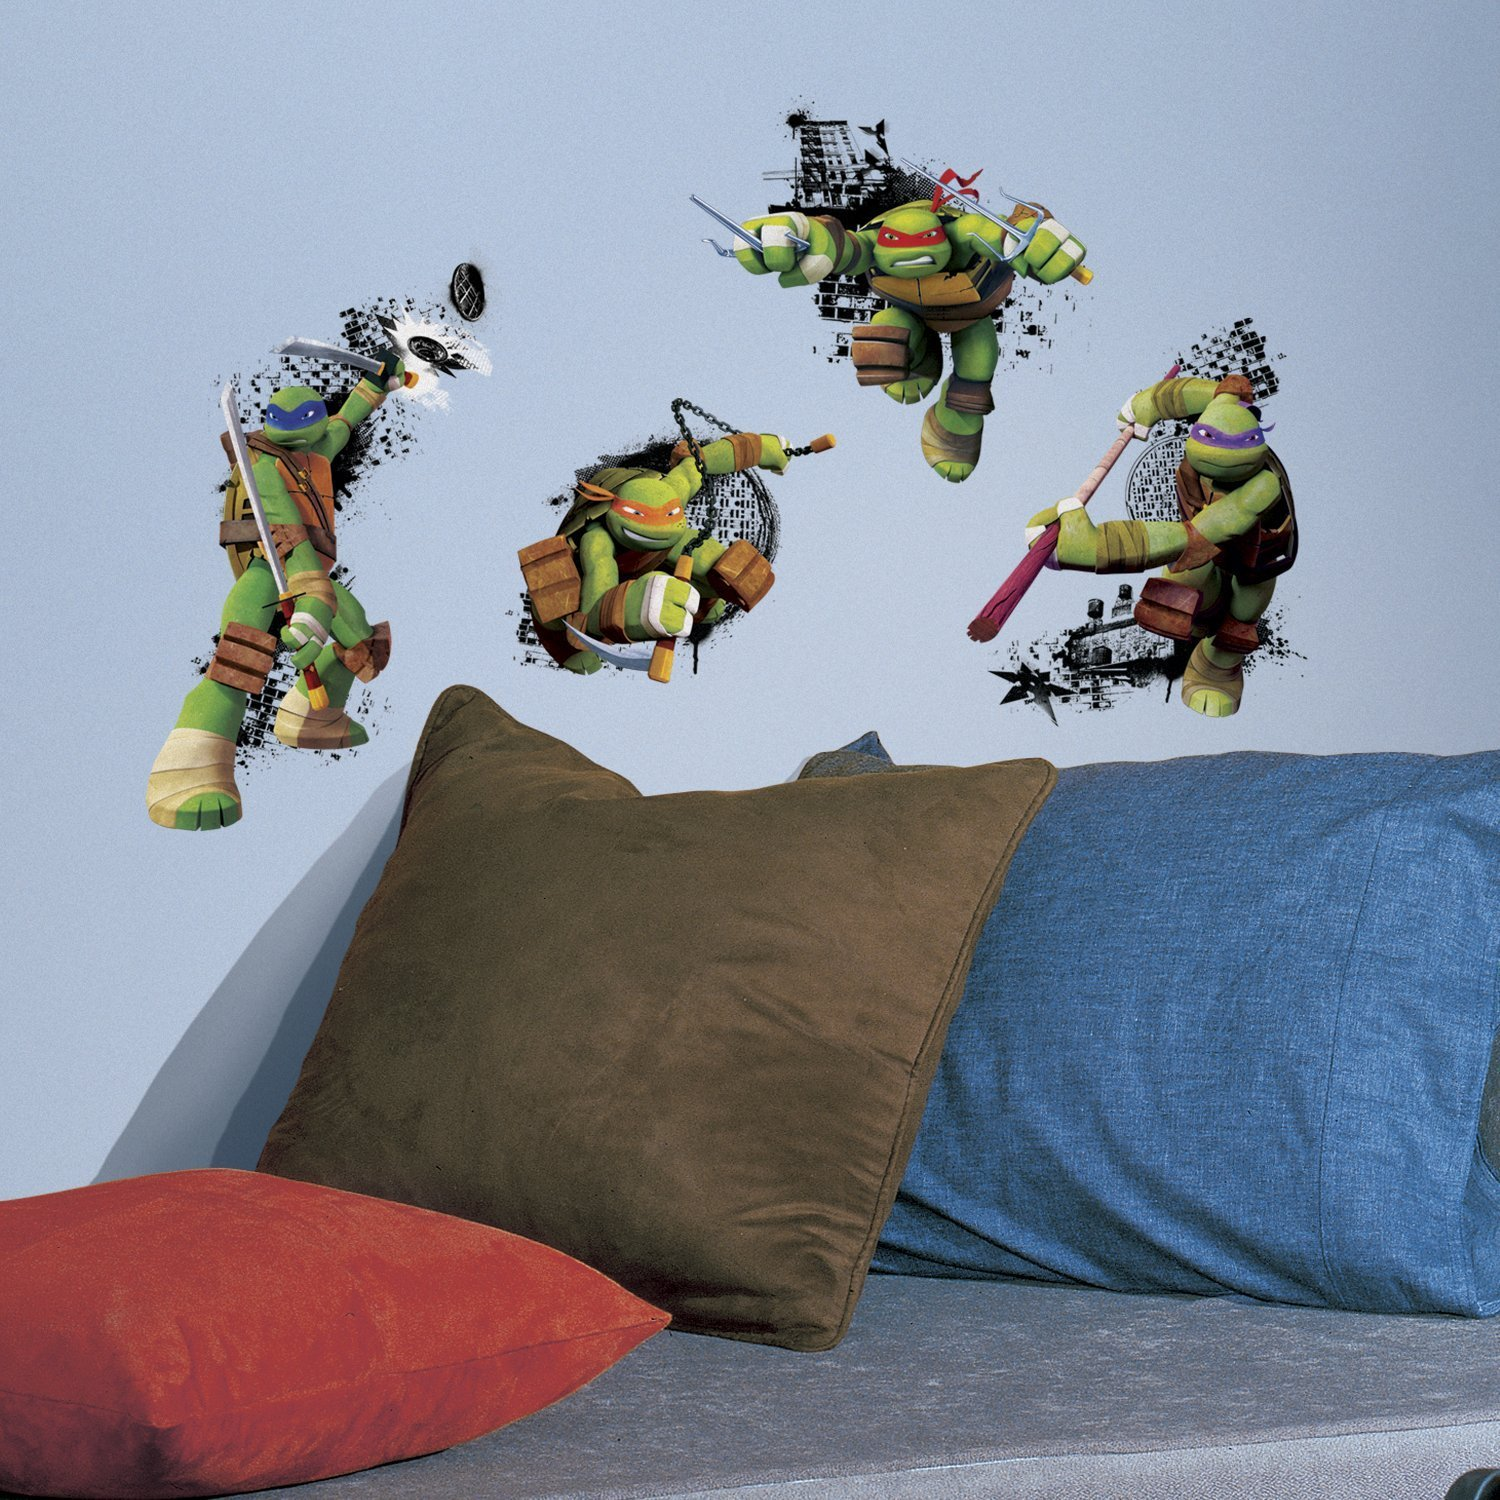 Teenage Mutant Ninja Turtles in Action Peel and Stick Giant Wall Decals 18 x 40in